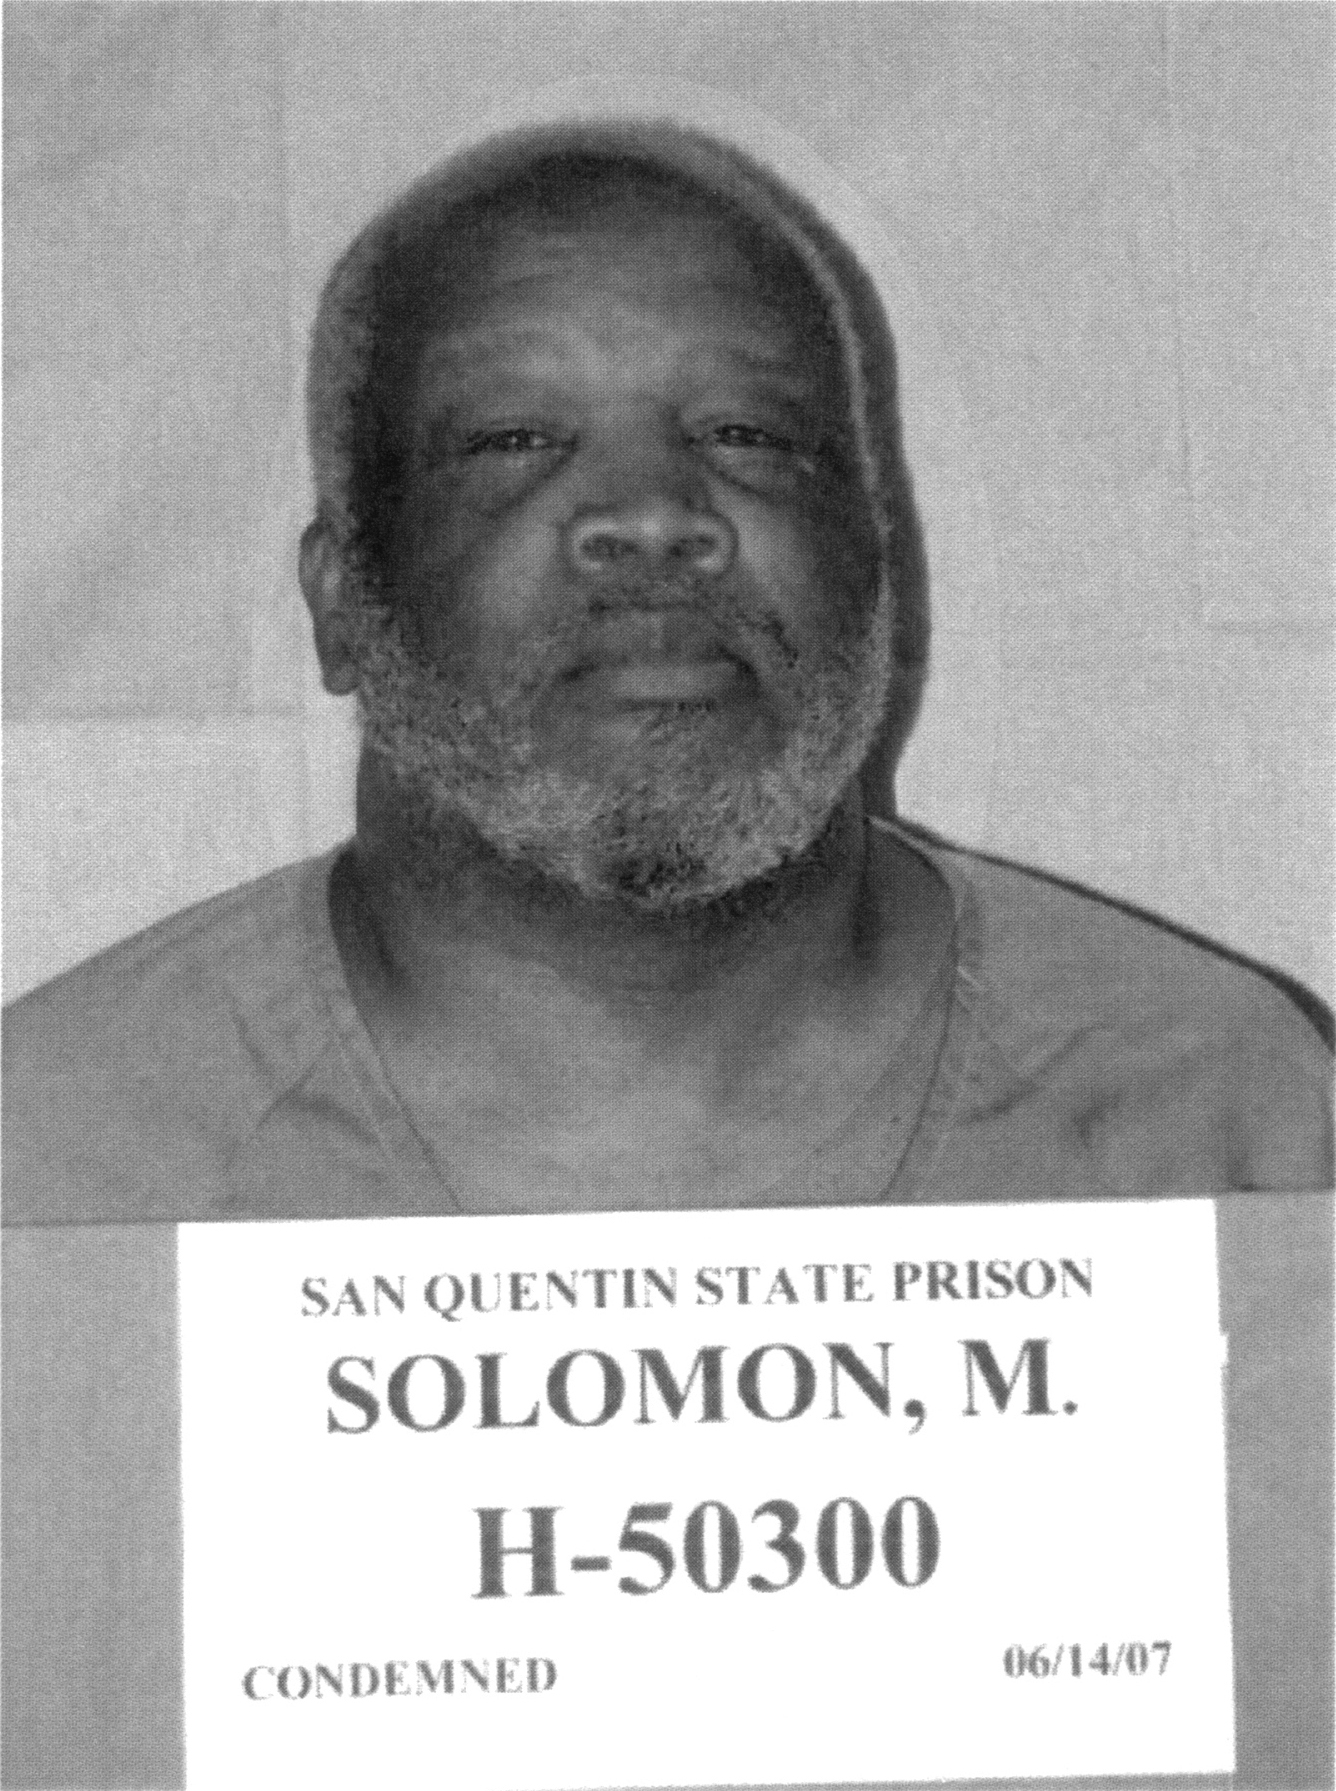 "Morris Solomon Jr. is on death row in San Quentin State Prison for killing six women in the 1980s. OBSERVER staff writer Antonio R. Harvey wrote a book, ""The Homicidal Handyman of Oak Park,"" about the serial-homicide case under his pen name, Tony Ray Harvey. (Solomon photo courtesy of the California Department of Corrections and Rehabilitation)"